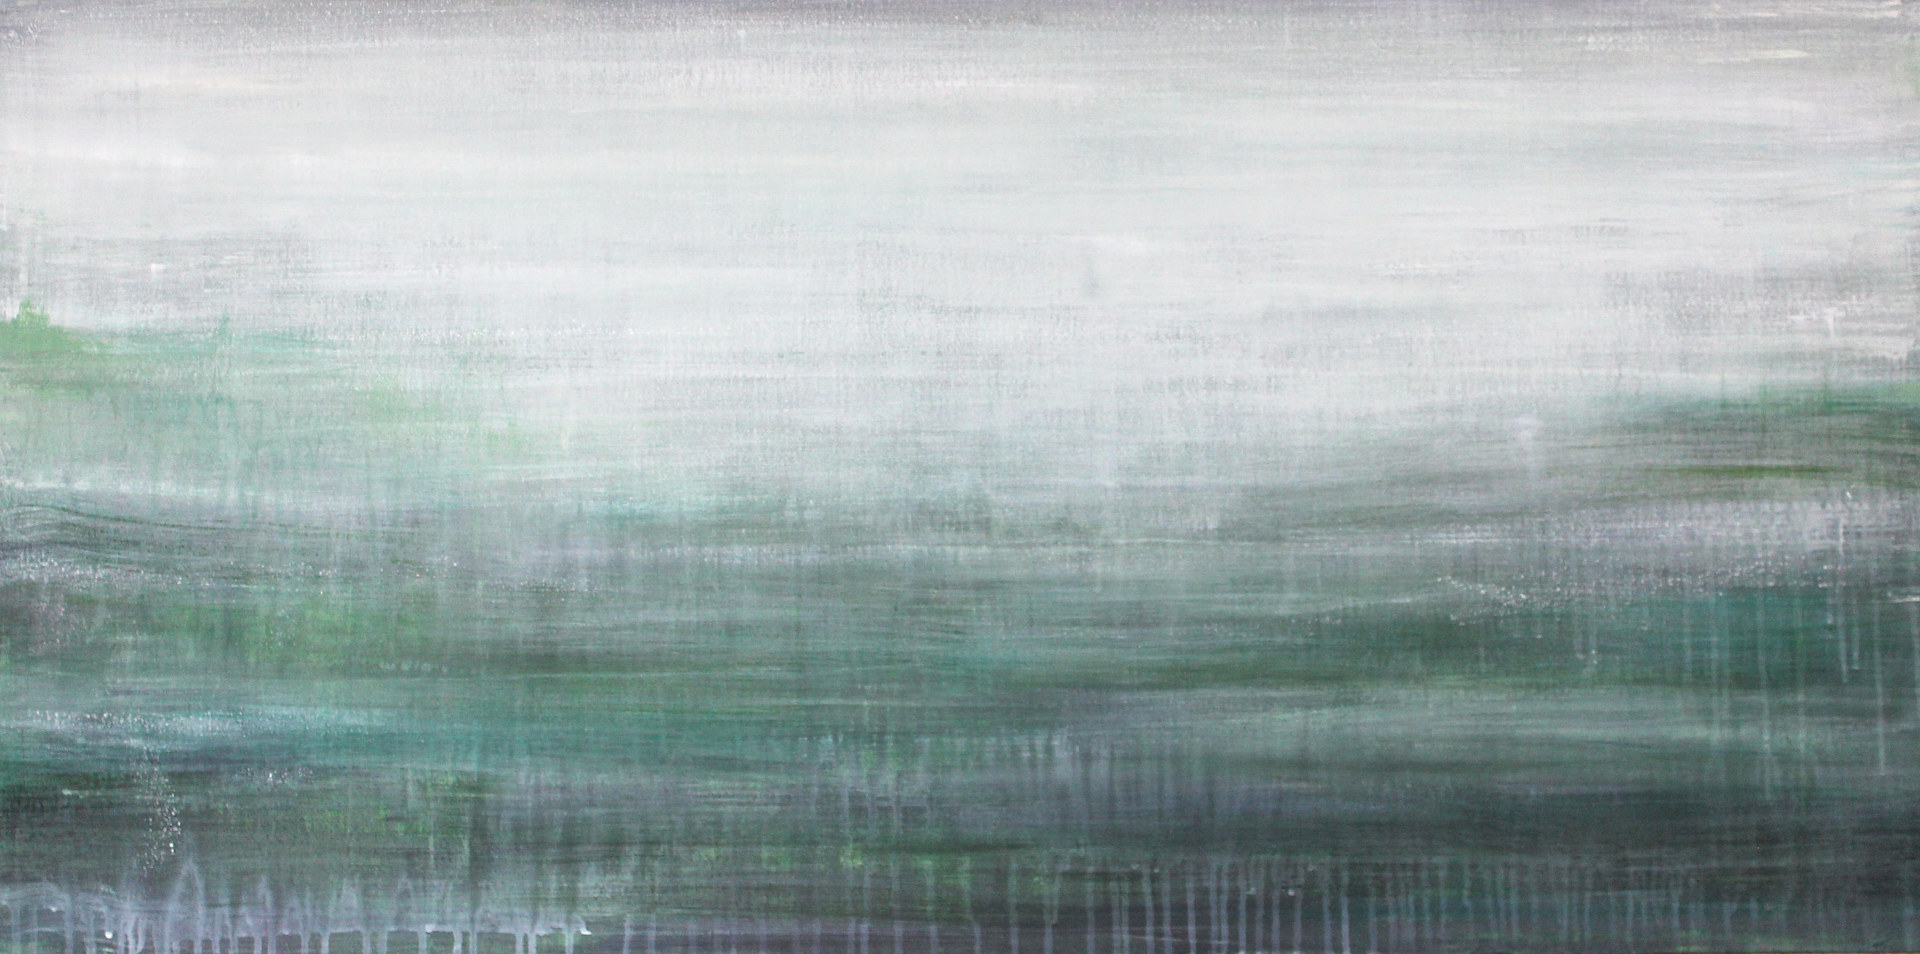 Acrylic painting Gone with the Fog by Laura Spring